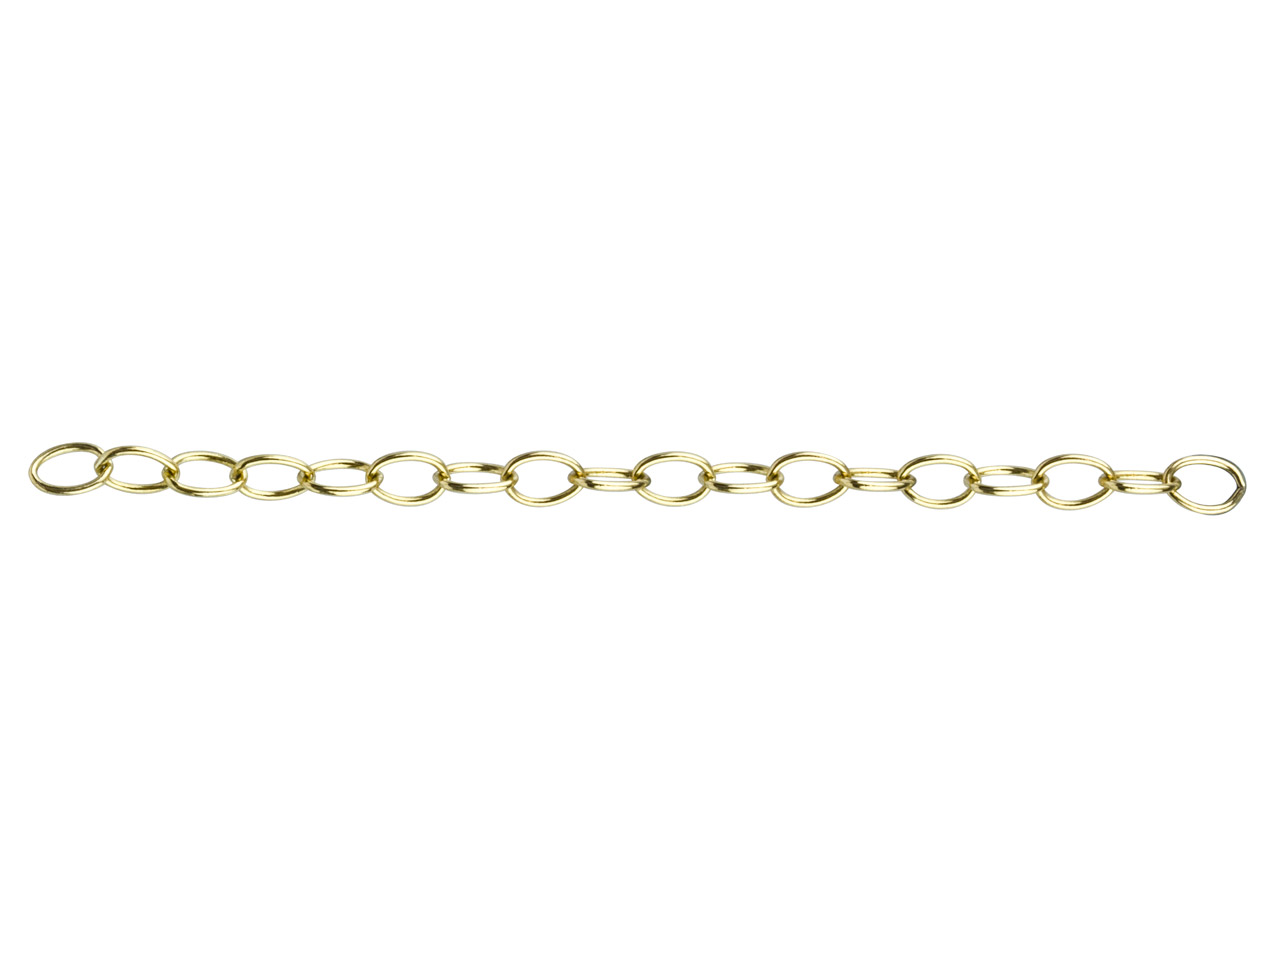 12ct Gold Filled Plain Oval Link,  4.5 X 5.9, Loose